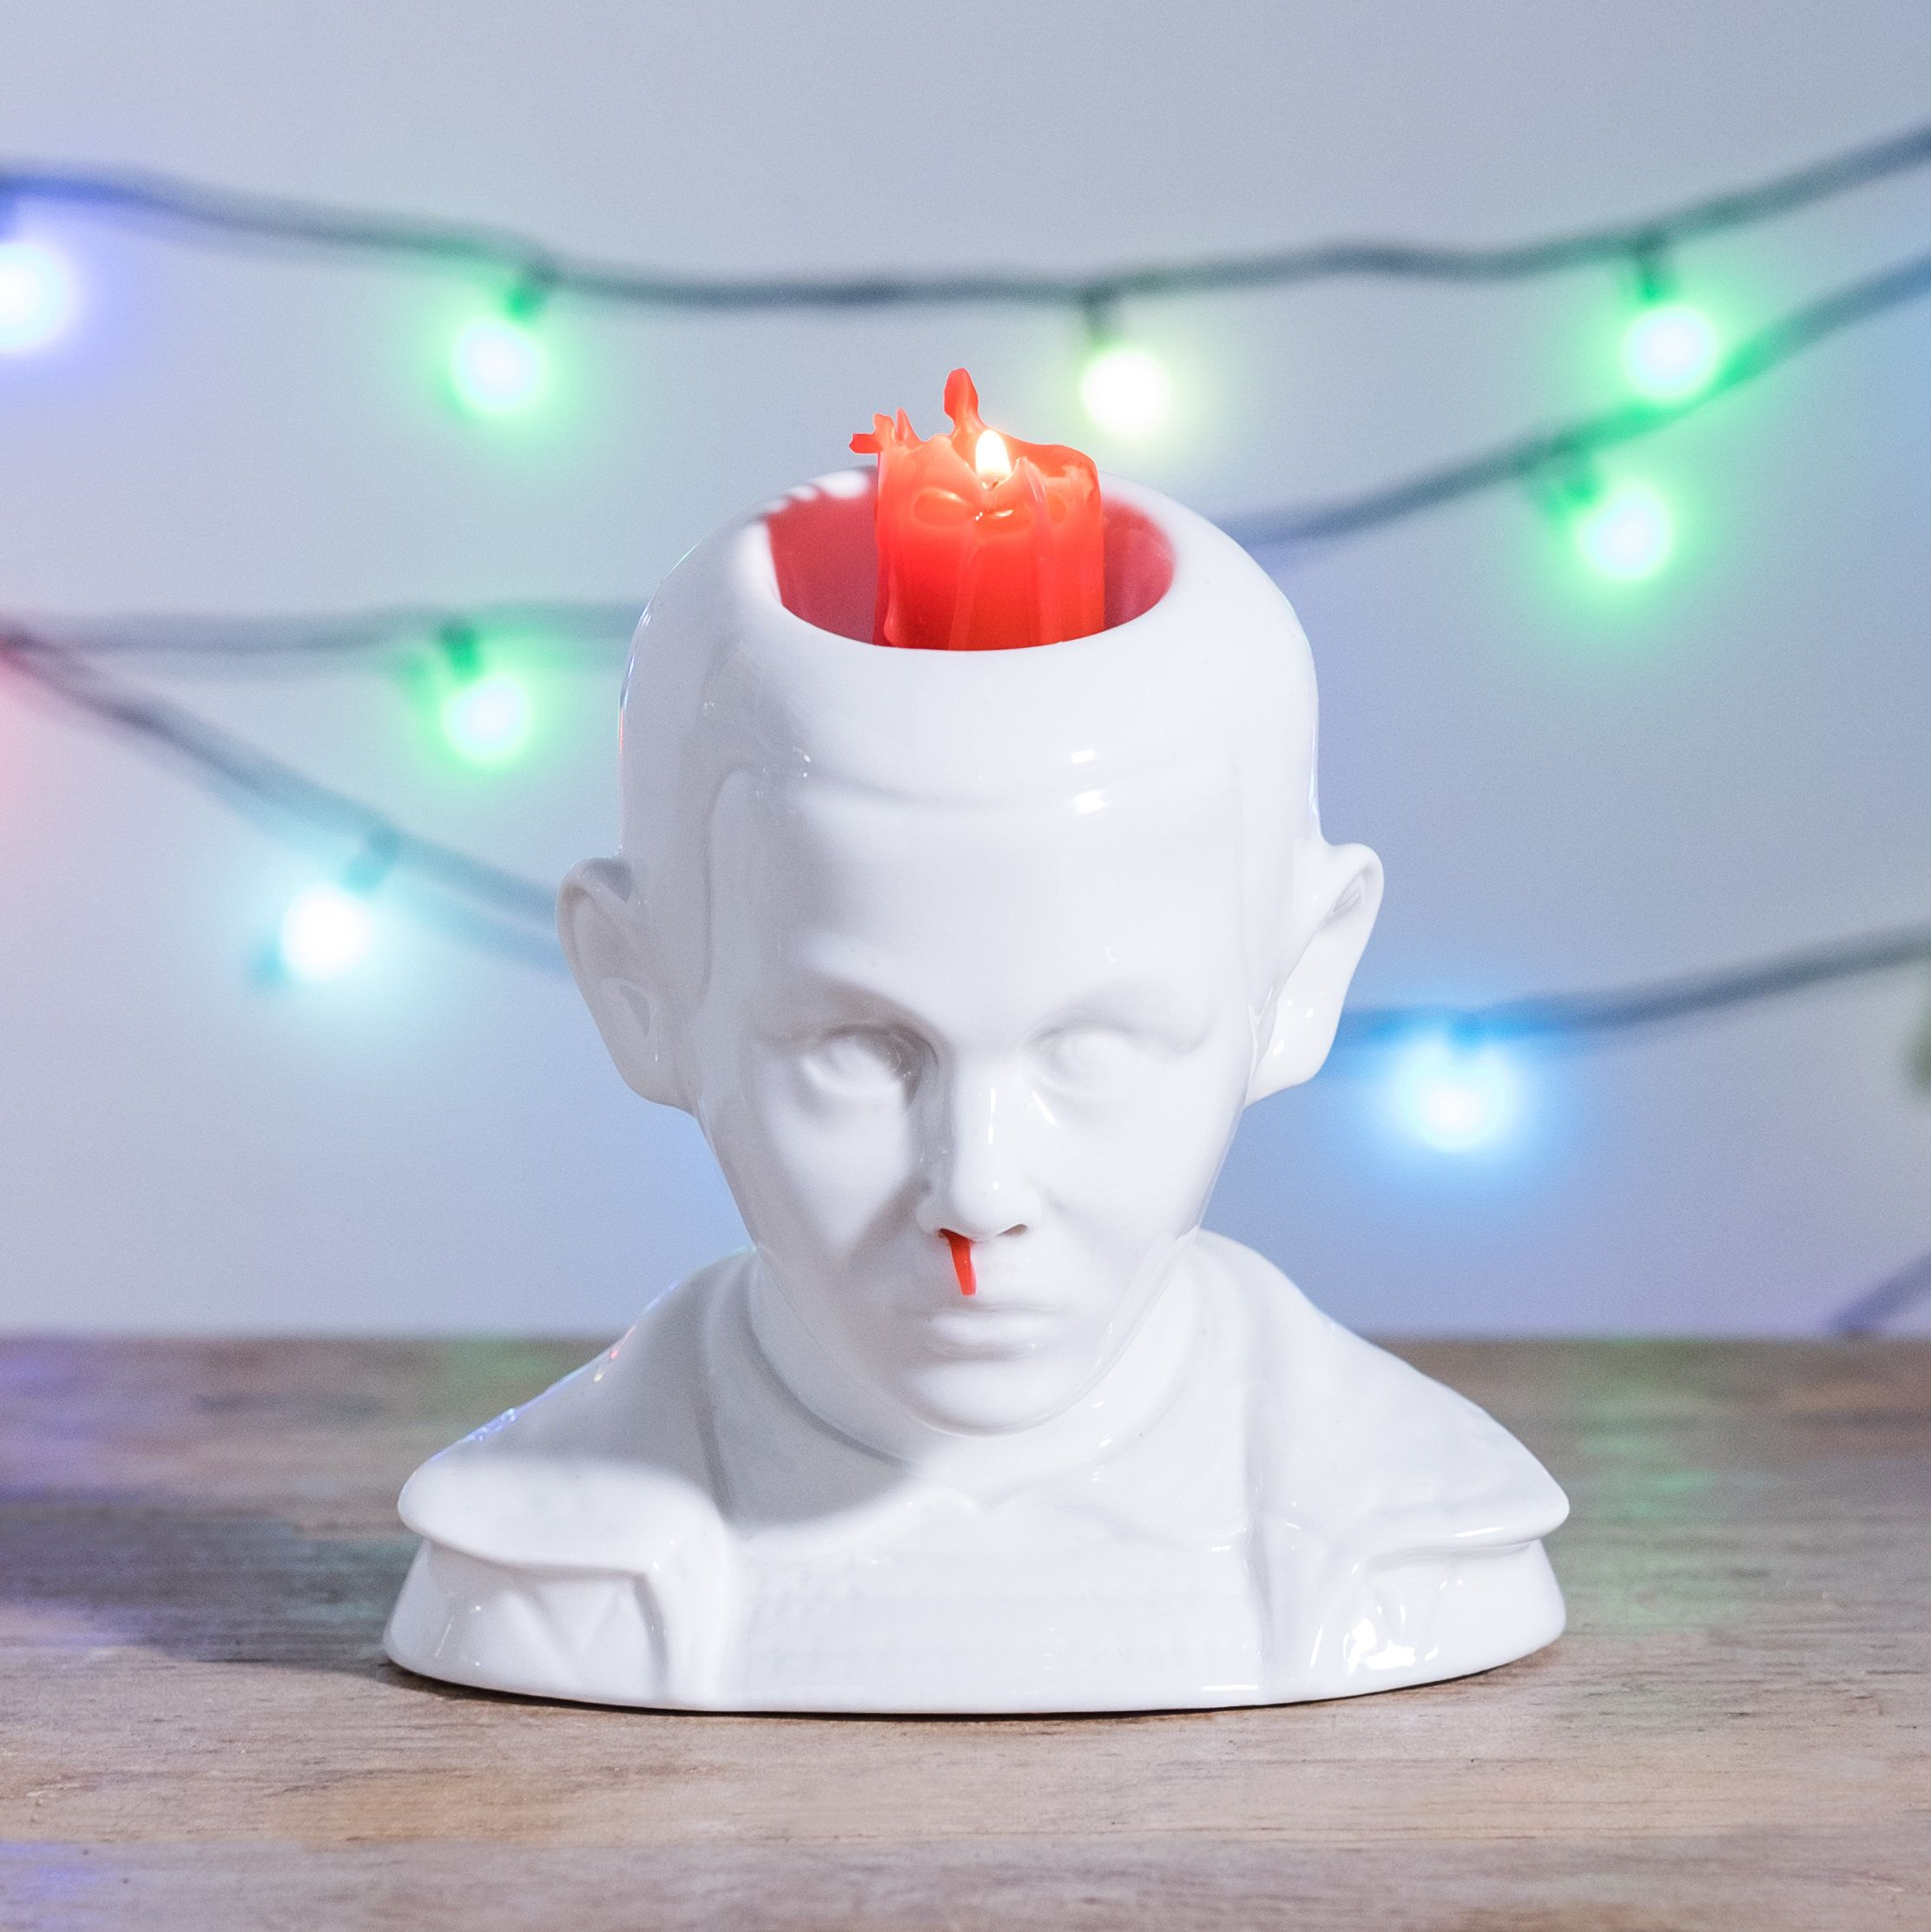 This 'Stranger Things' Candle Has An Unexpected Surprise In